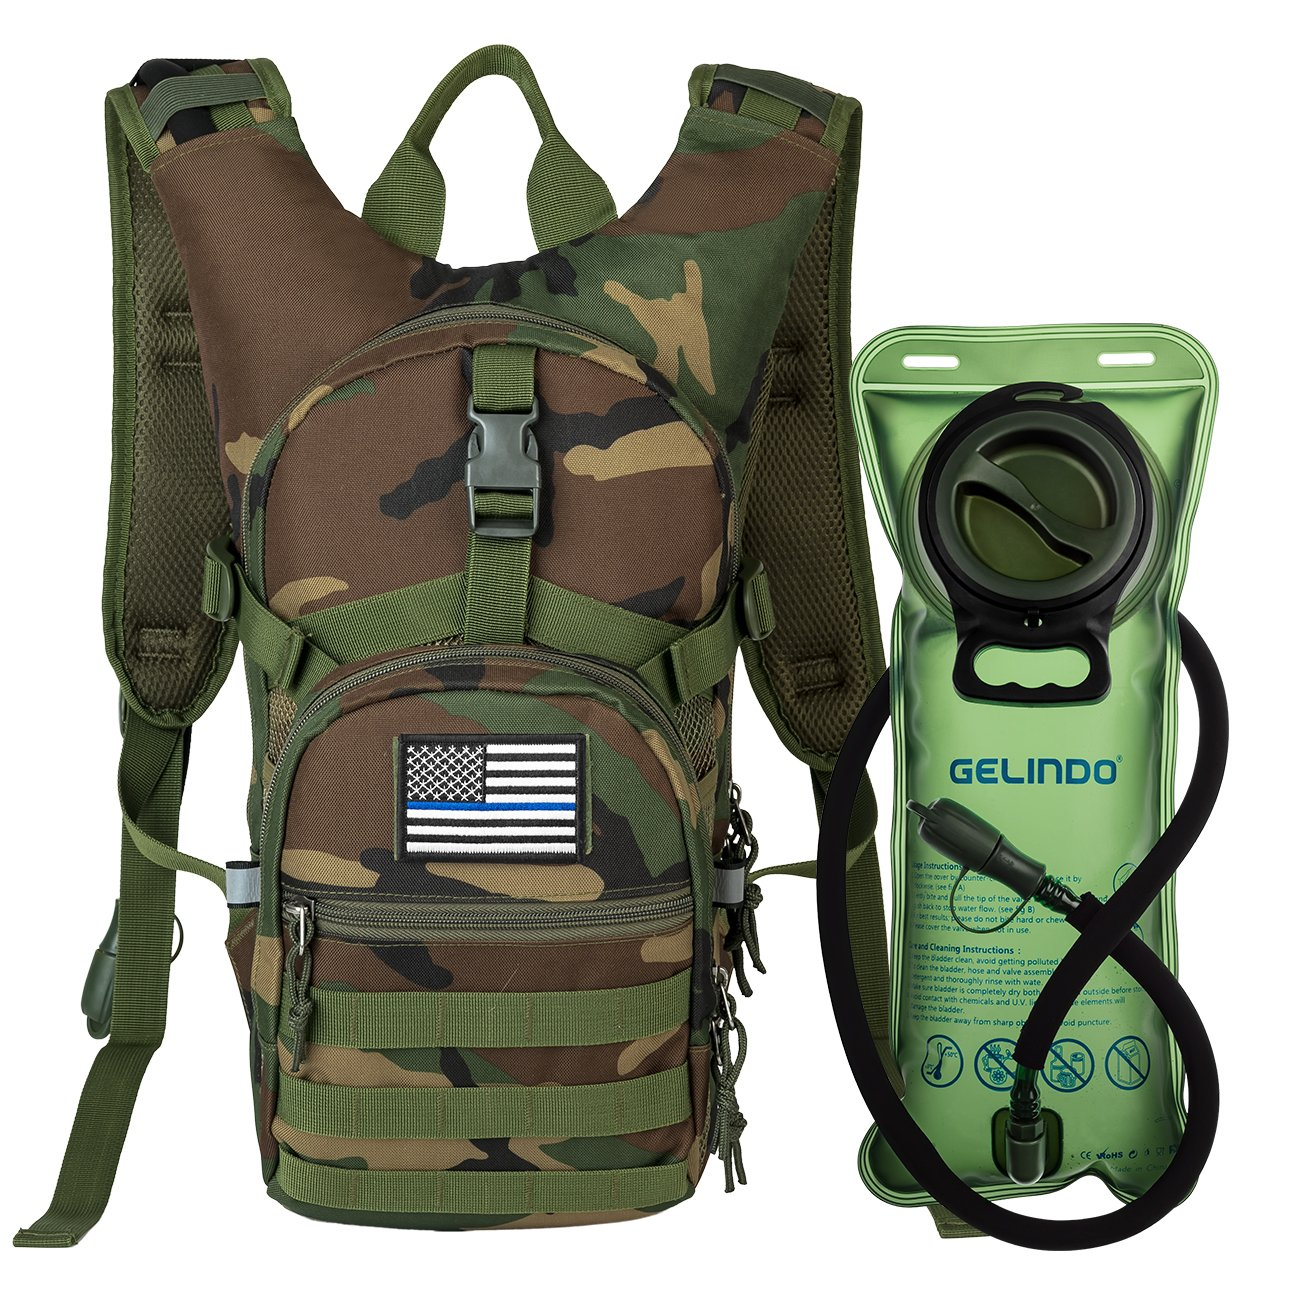 Gelindo Military Tactical Hydrationバックパックwith 2l水膀胱ライト重量MOLLE Tactical Assault Pack forハイキングサイクリングランニングウォーキング登山アウトドア旅行(cp-green)   B07CWYKG9D